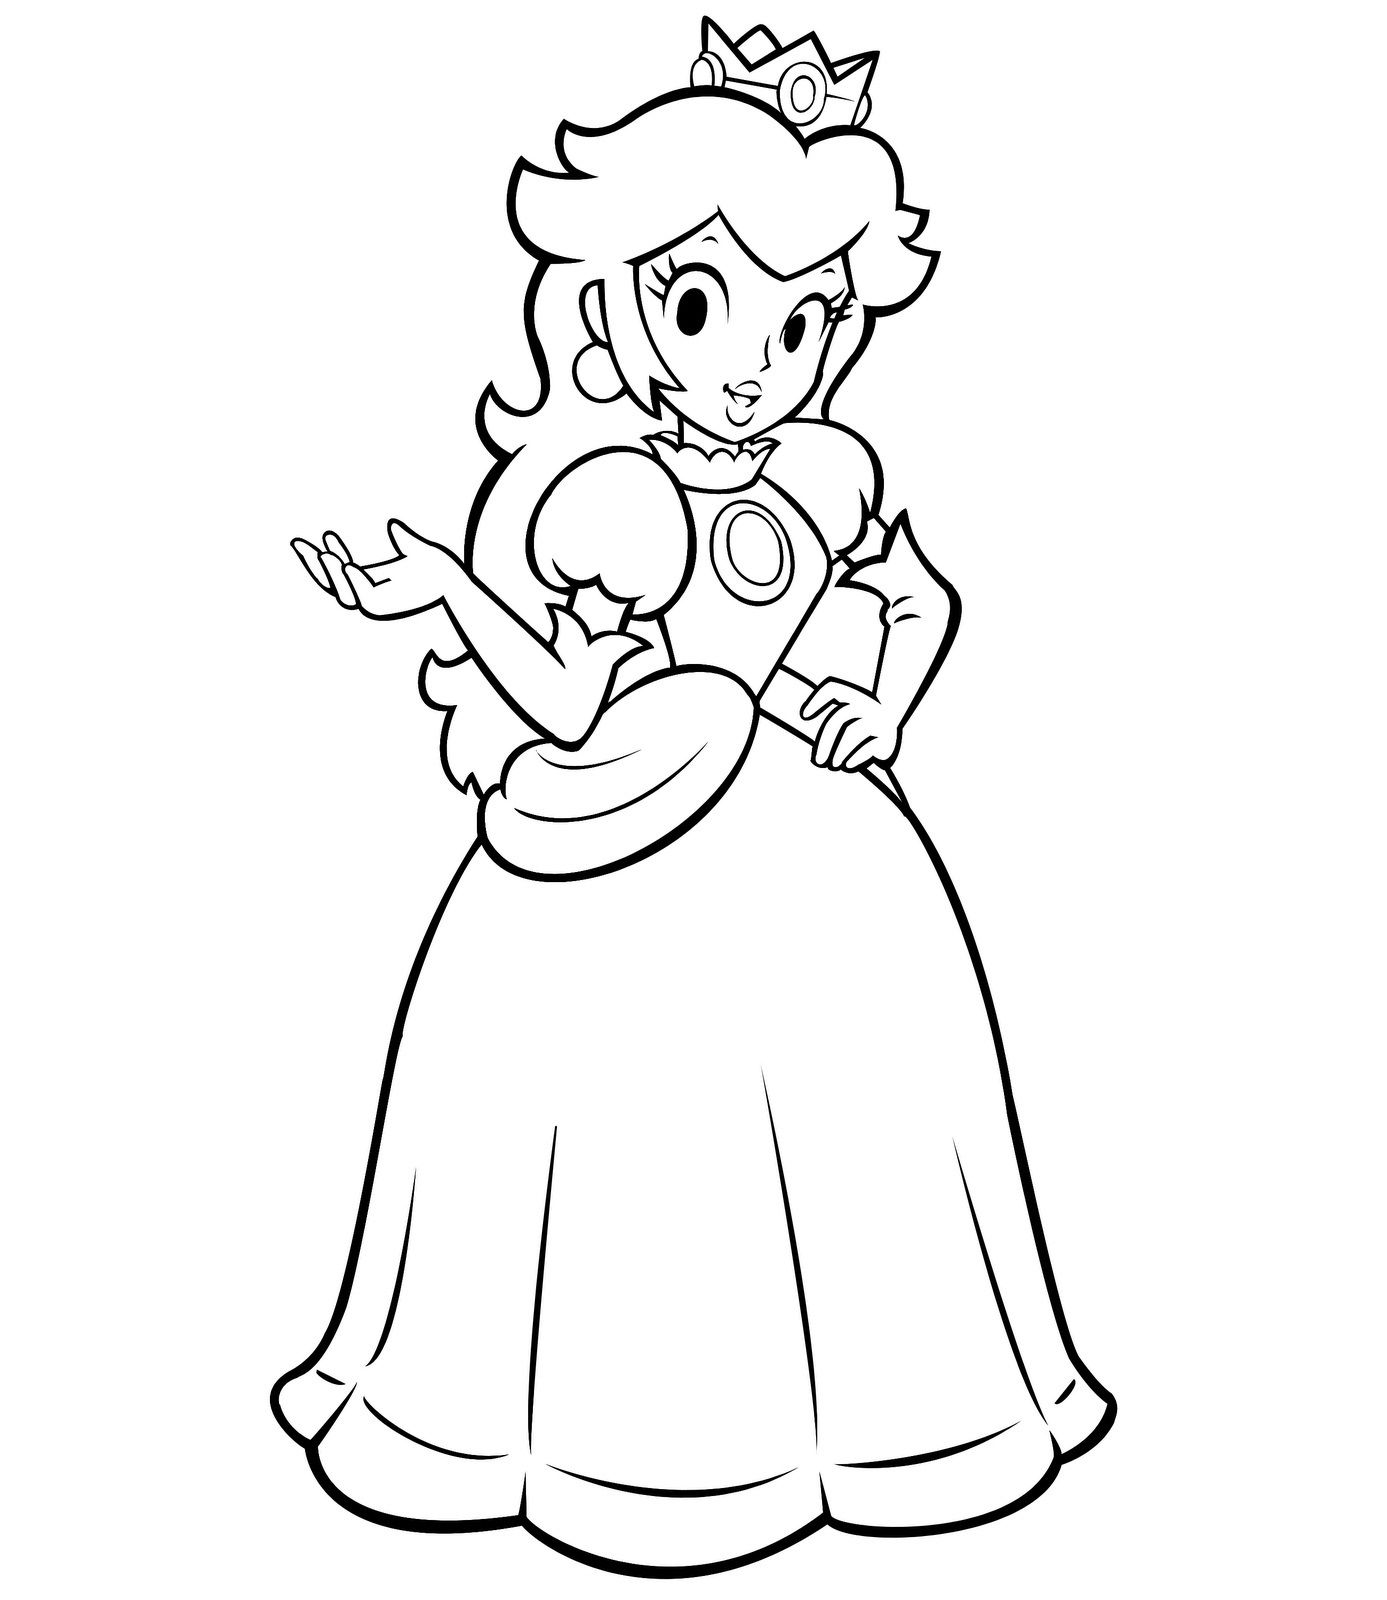 Free Princess Peach Coloring Pages For Kids Princess Coloring Pages Mario Coloring Pages Super Mario Coloring Pages